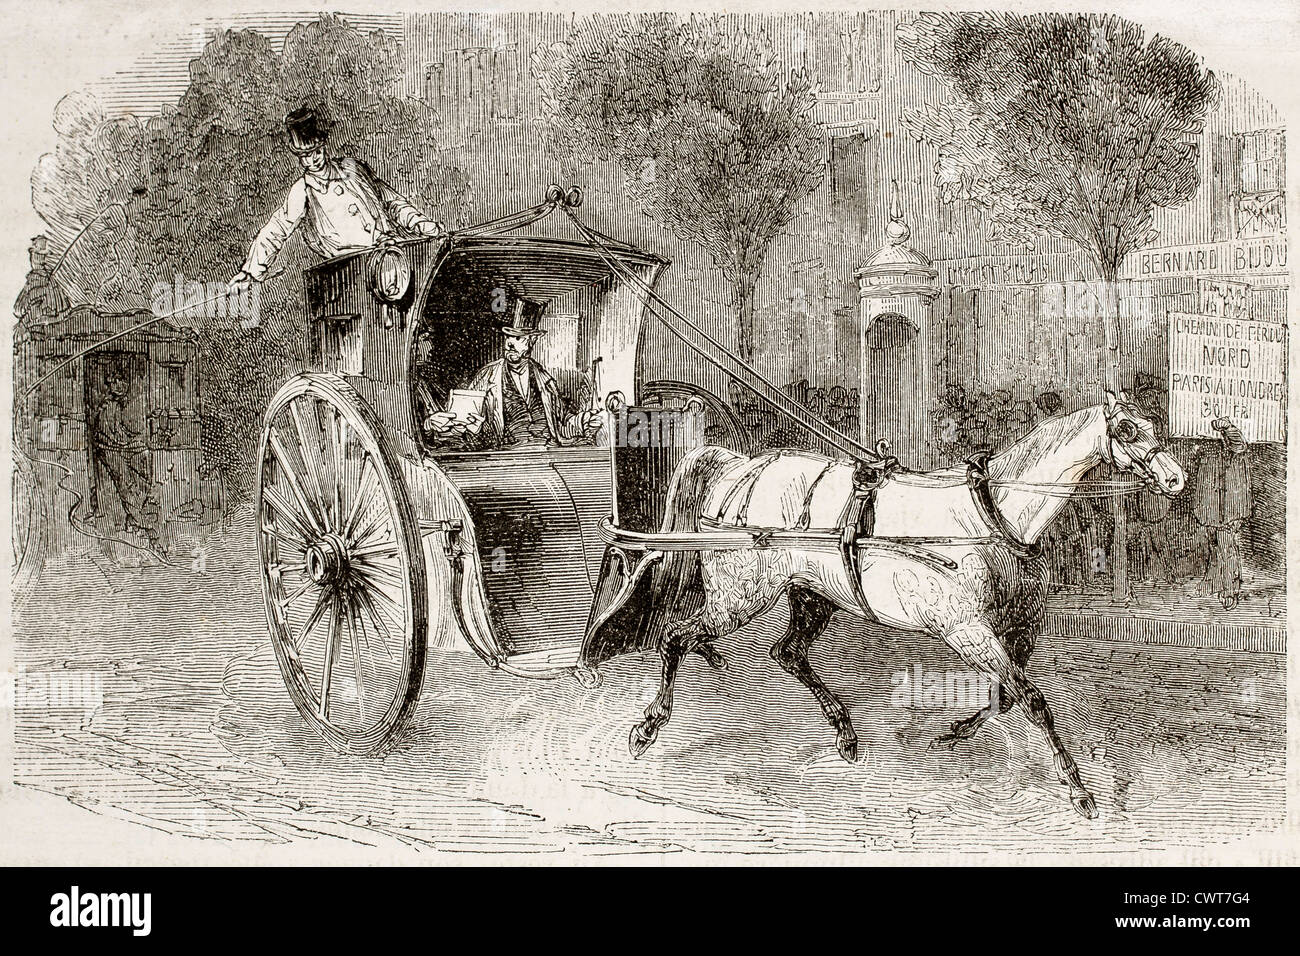 Old Illustration Of A Carriage With Passengers In Paris Stock Photo Alamy